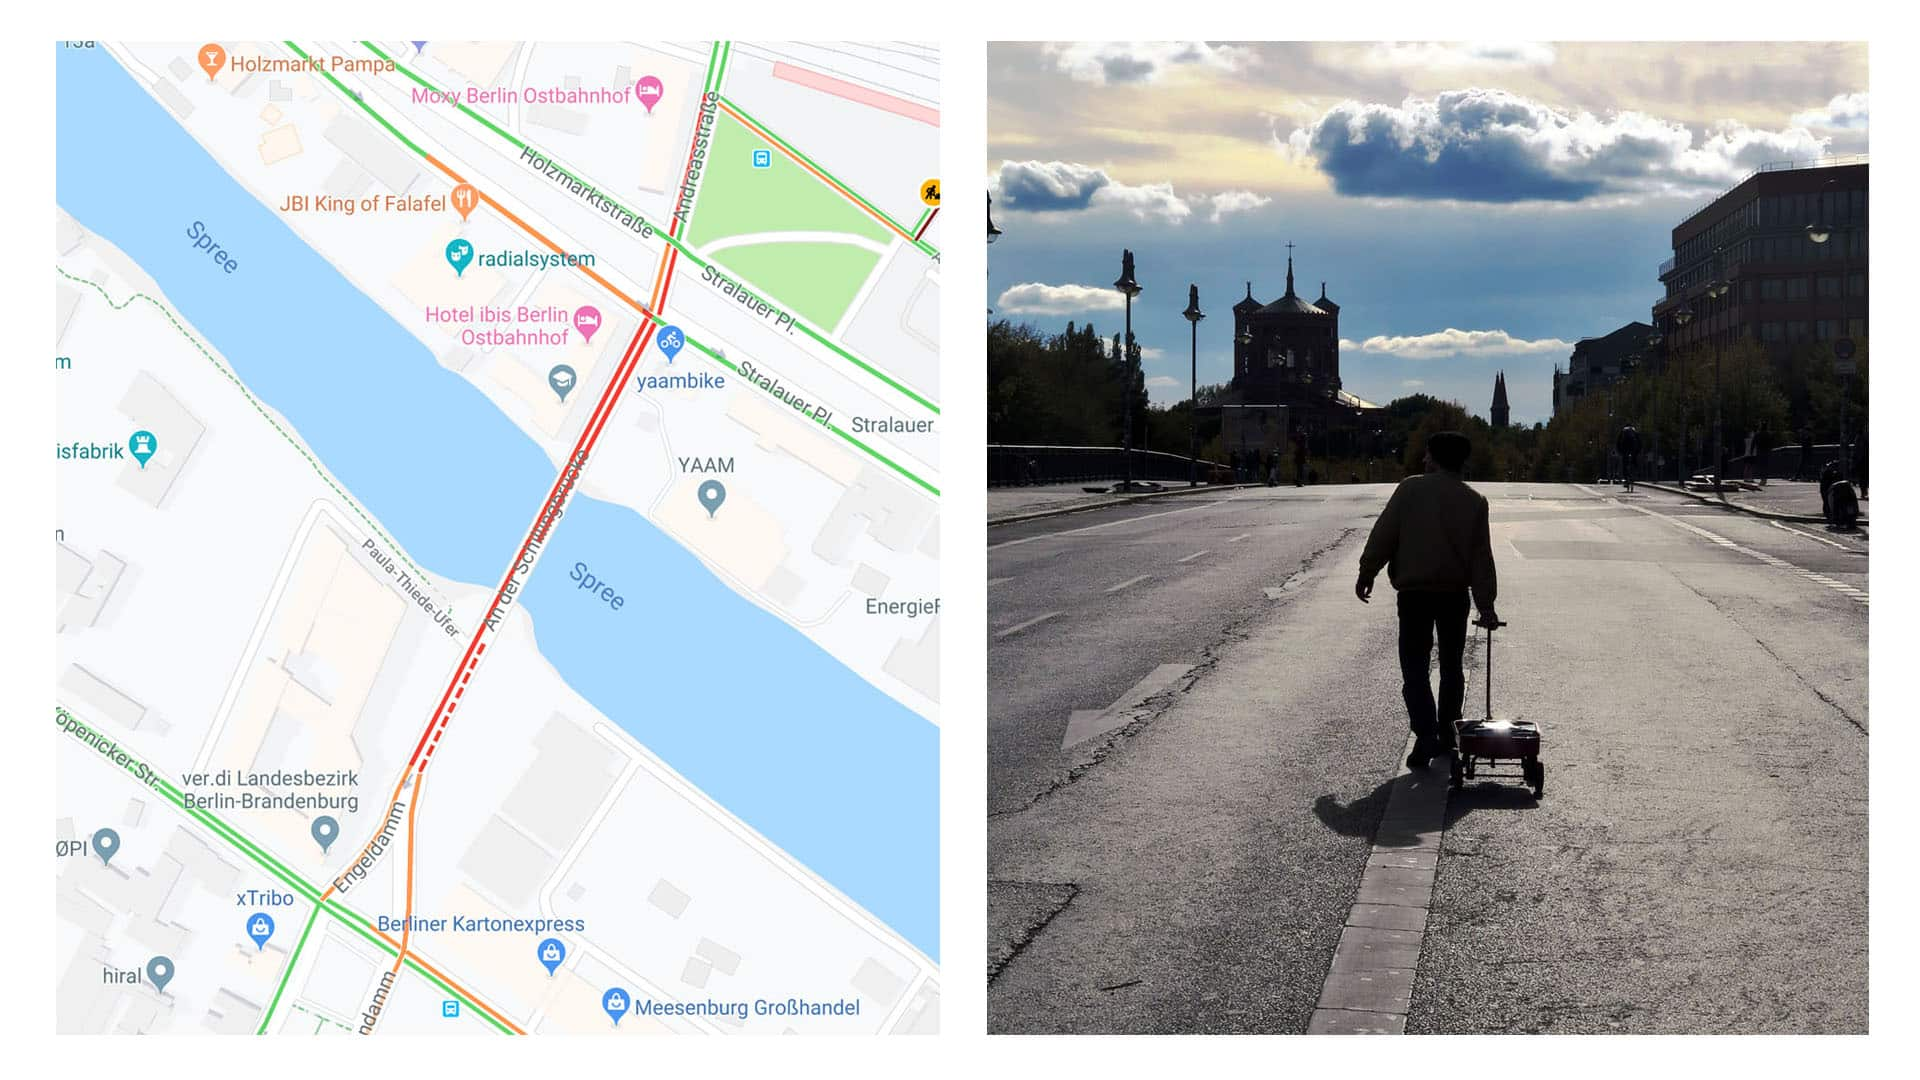 Google Maps displays a traffic jam from artist's project with smartphones.